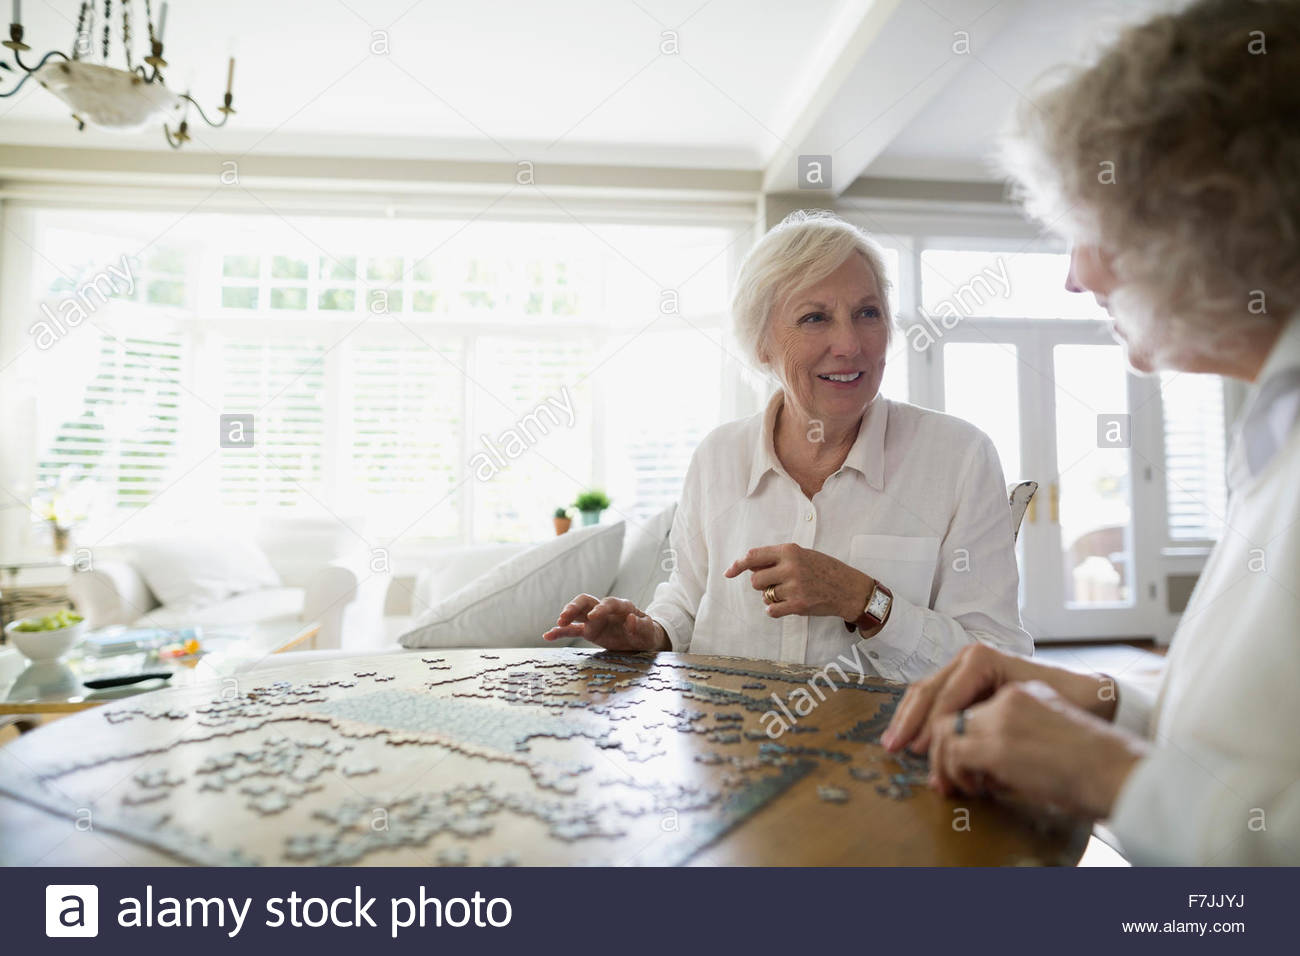 Senior women assembling jigsaw puzzle at dining table - Stock Image